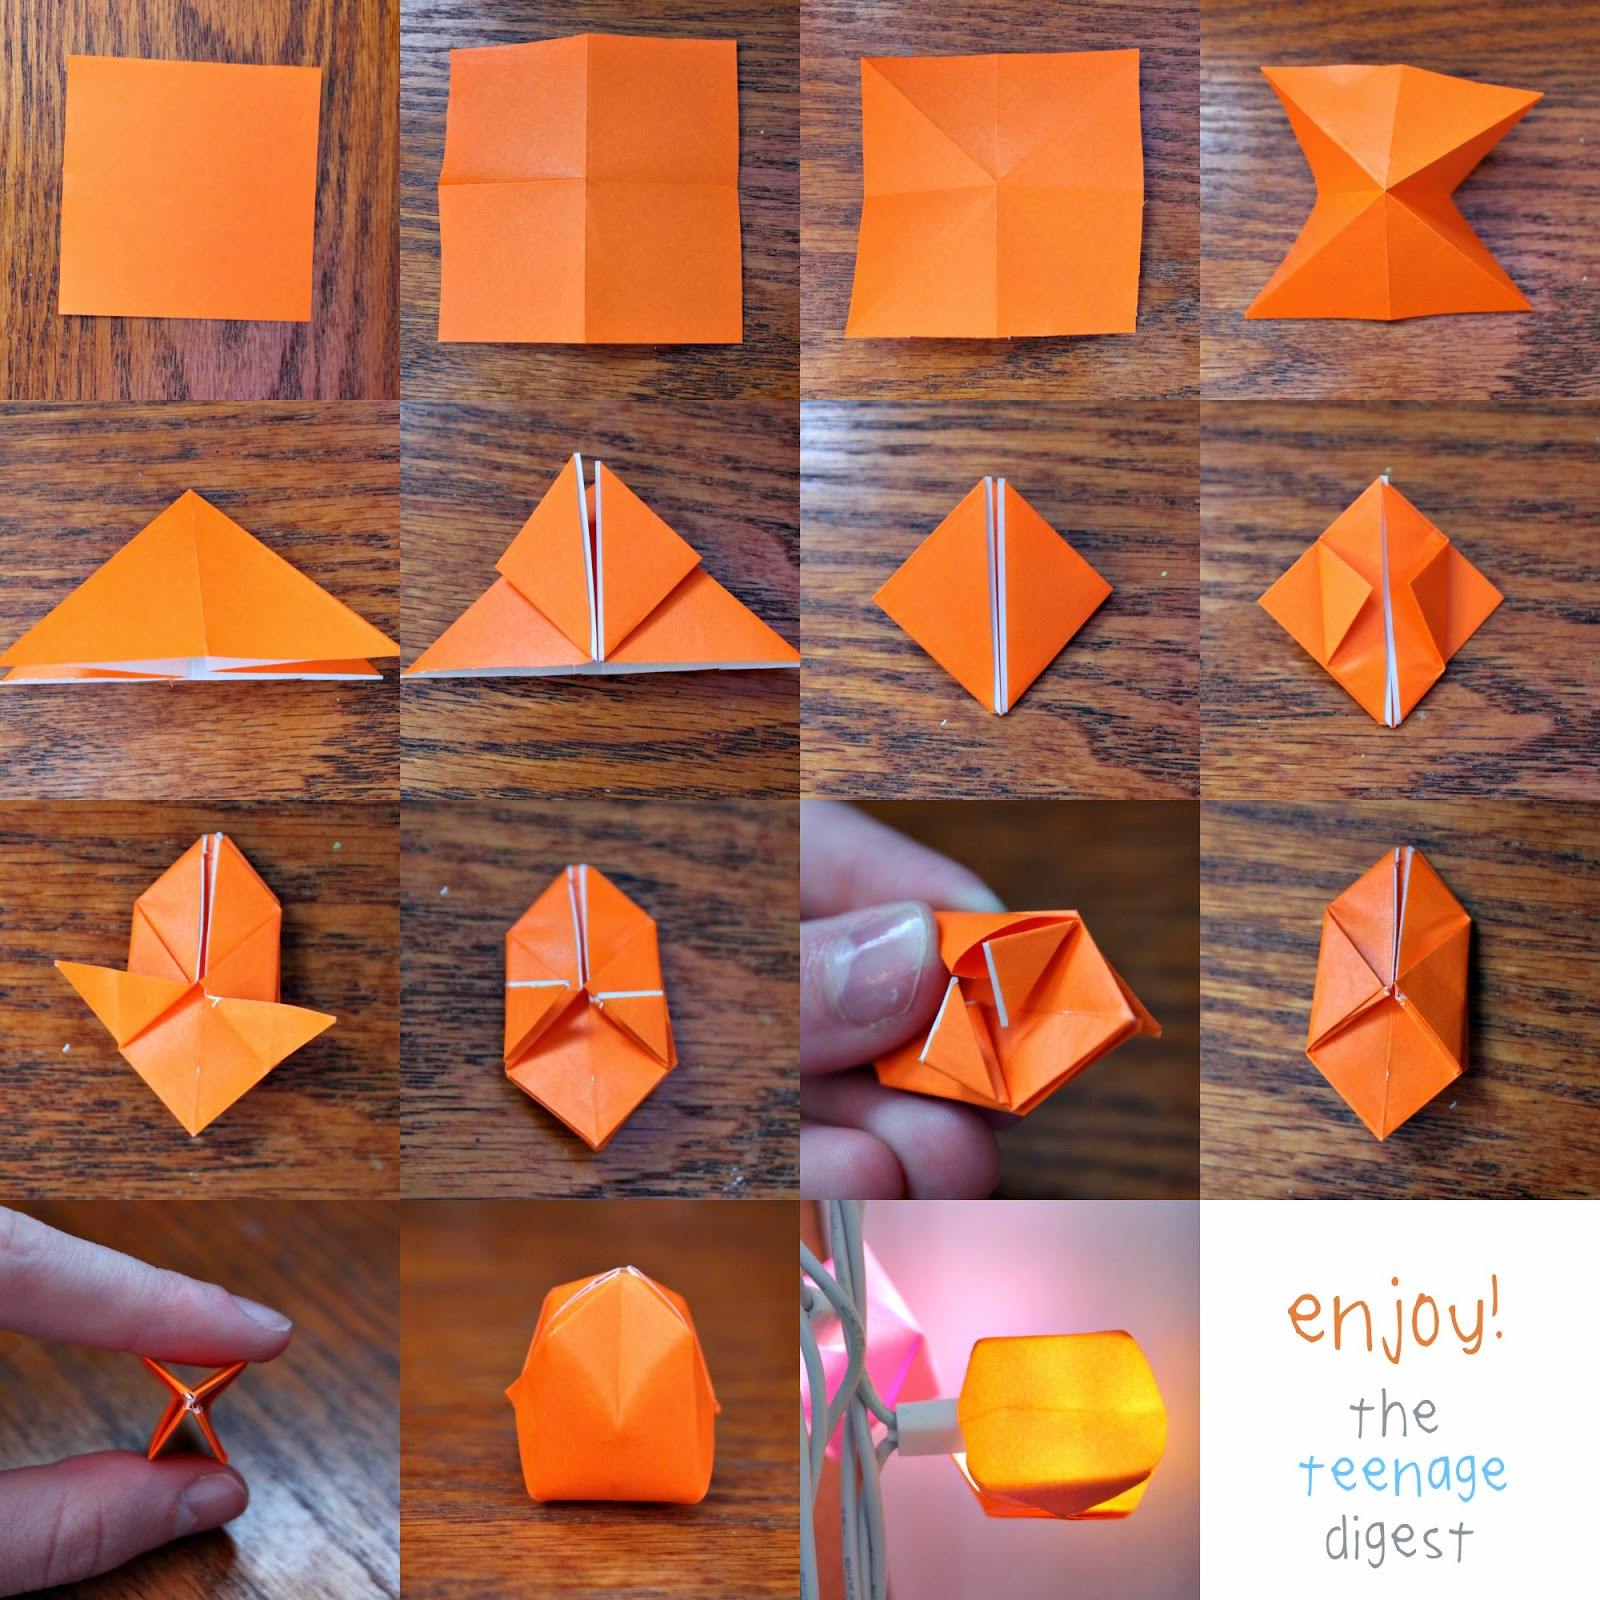 Start With A Square Of Colored Paper I Used 1 4 Piece Origami 2 Fold It In Half Vertically And Horizontally Make Sure To Keep The